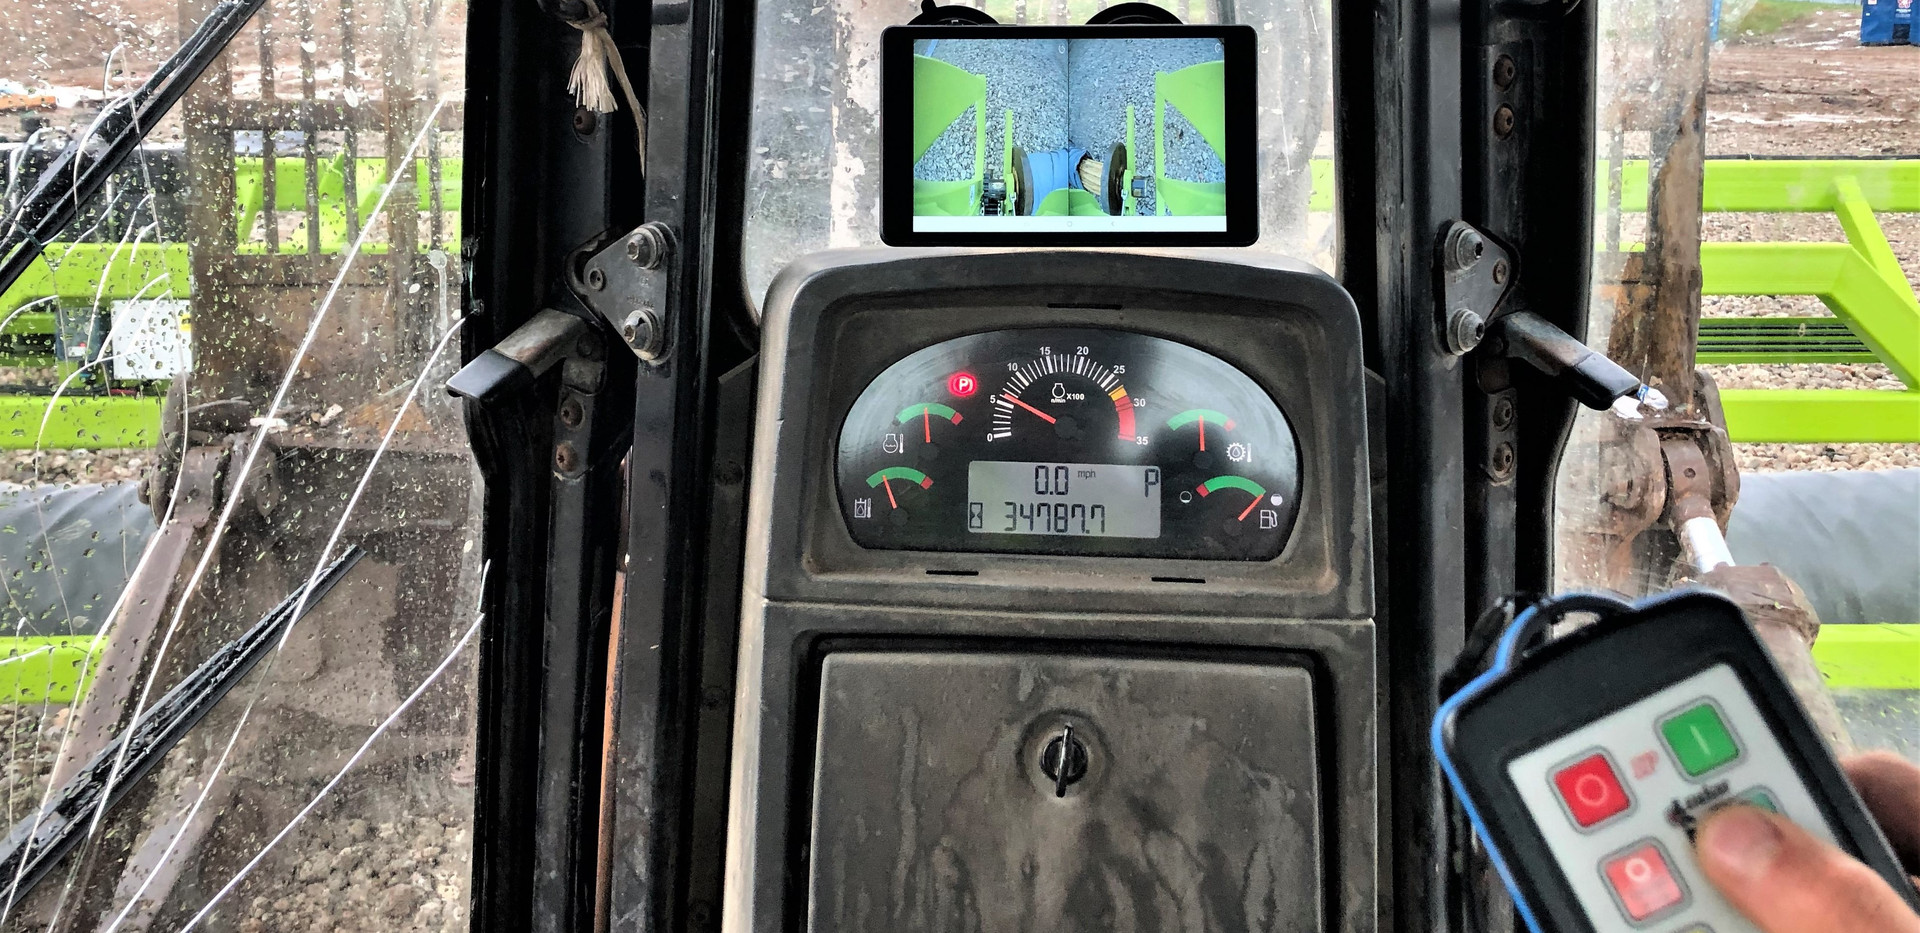 One operator does it all from the safety and comfort of the cab